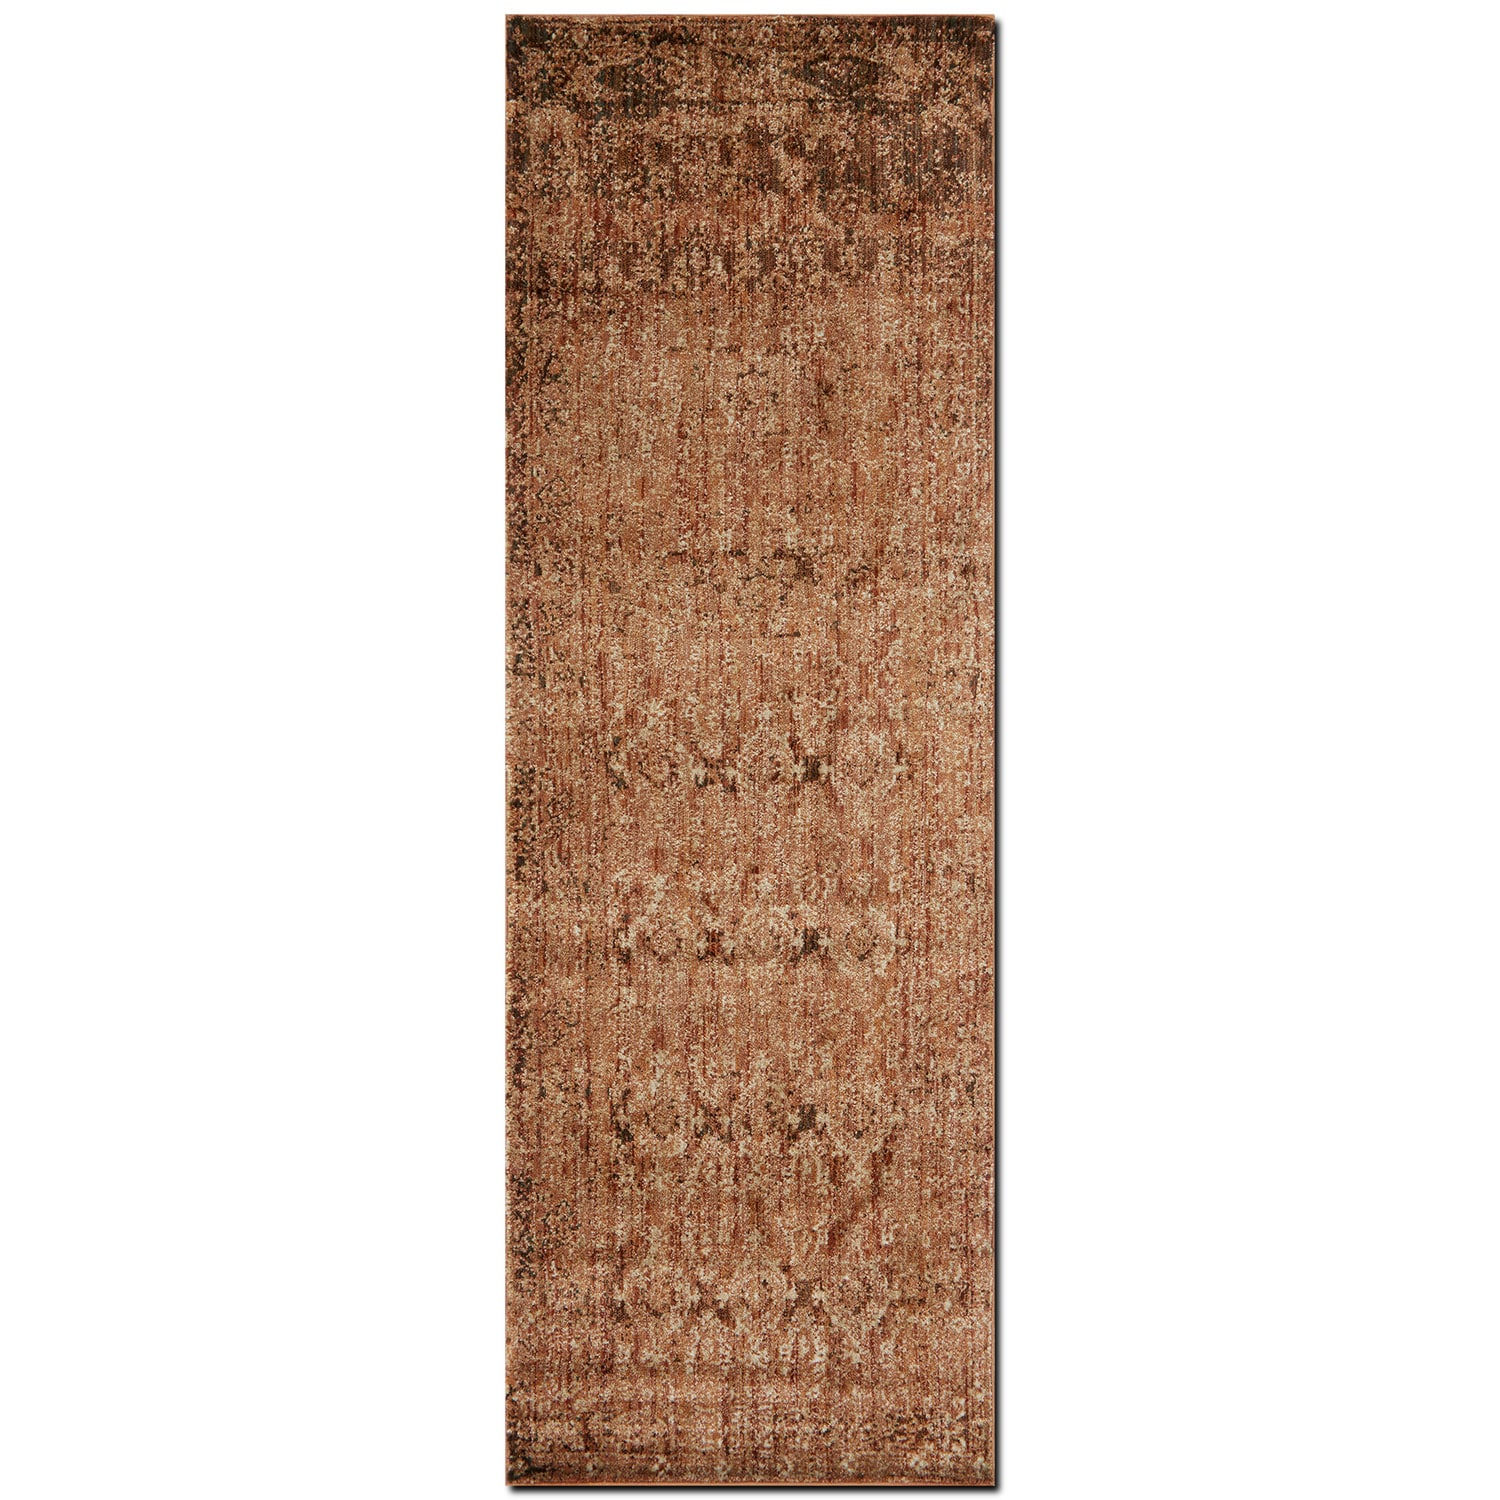 Kivi 3' x 8' Rug - Sand and Copper